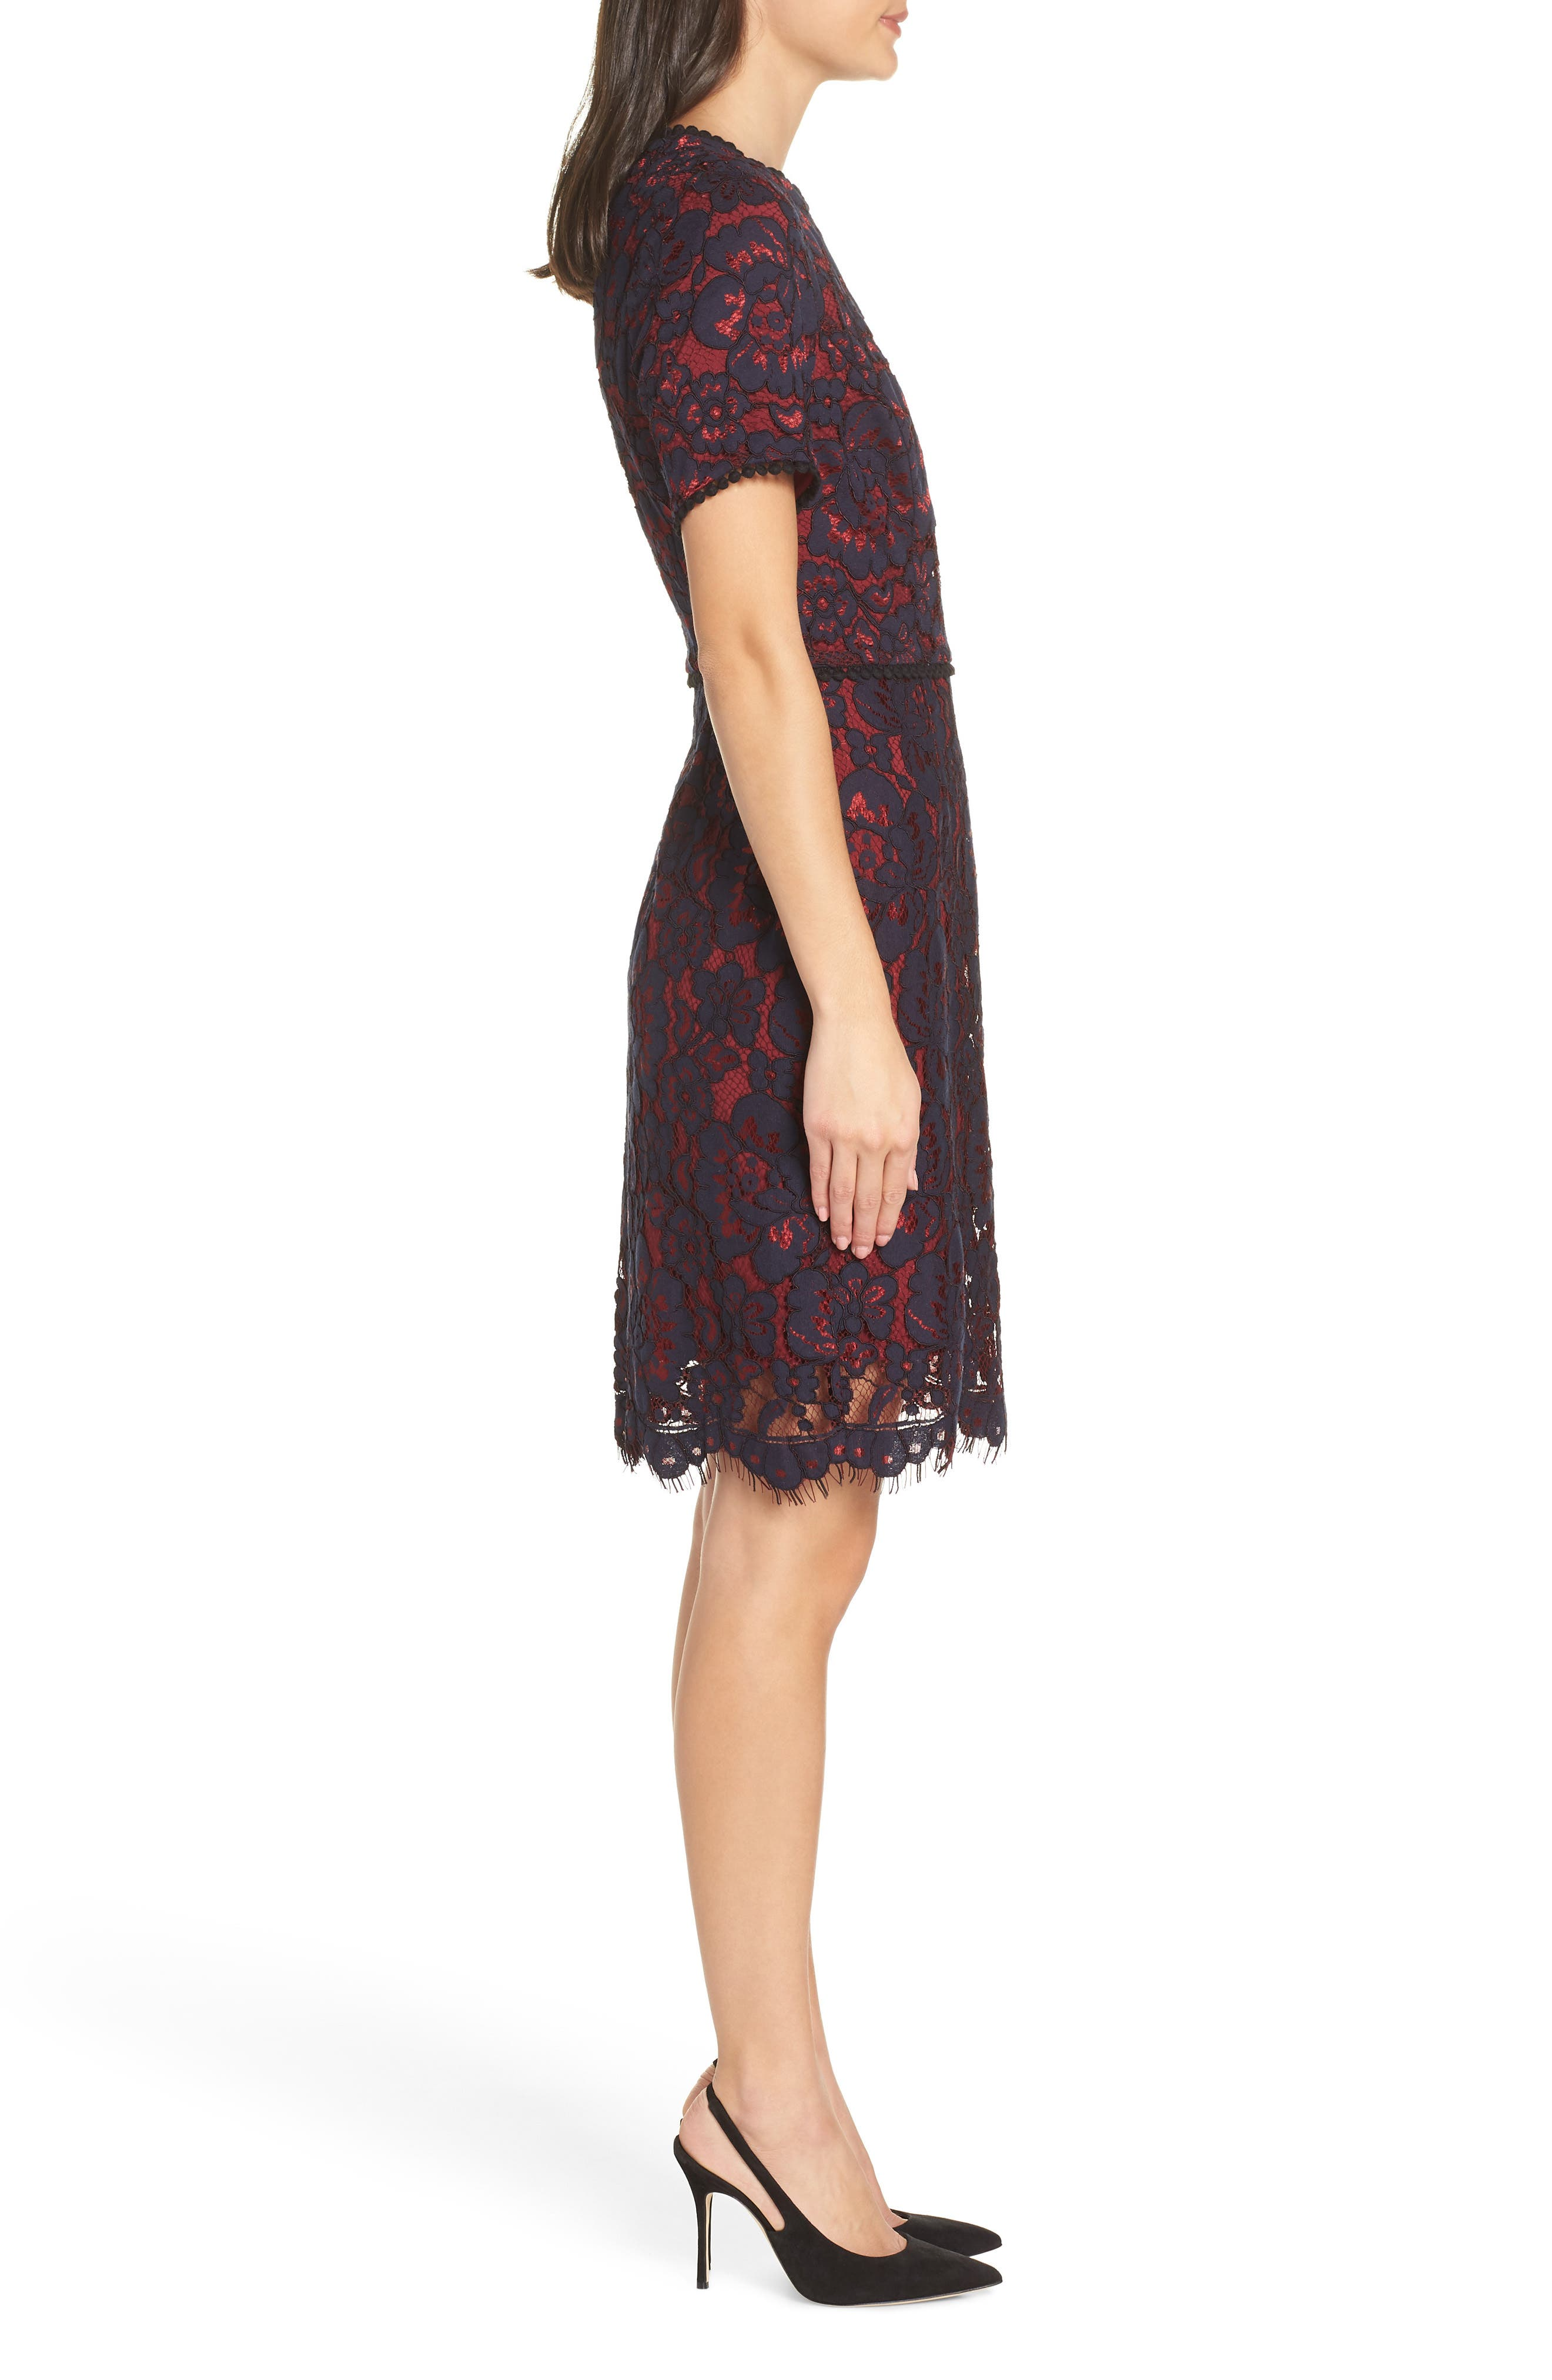 CHARLES HENRY, Lace Sheath Dress, Alternate thumbnail 4, color, 438